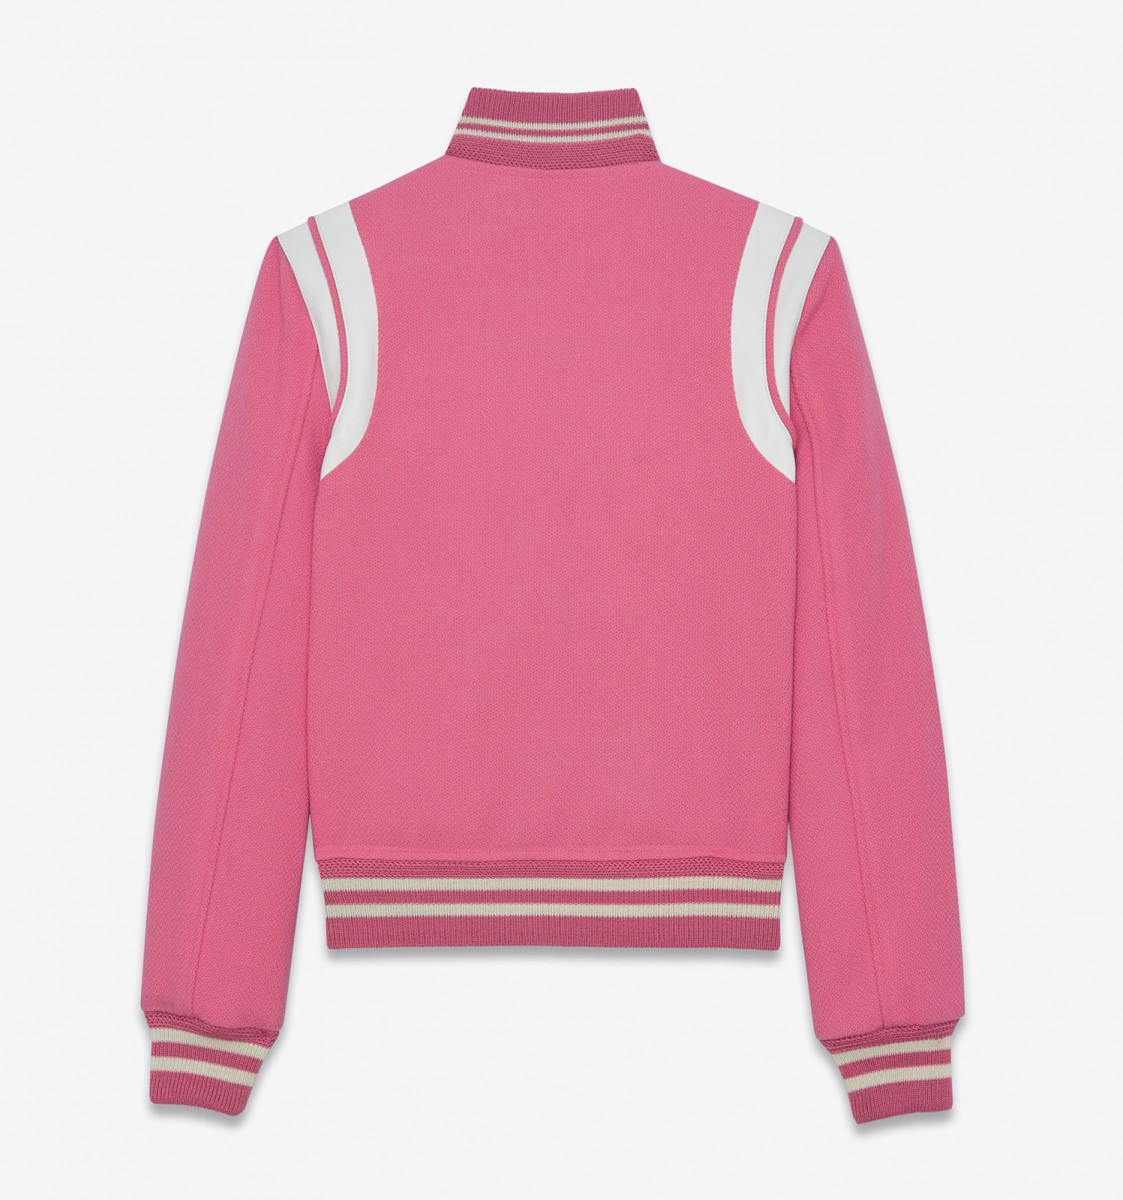 saint-laurent-teddy-jacket-pink-2-1123x1200